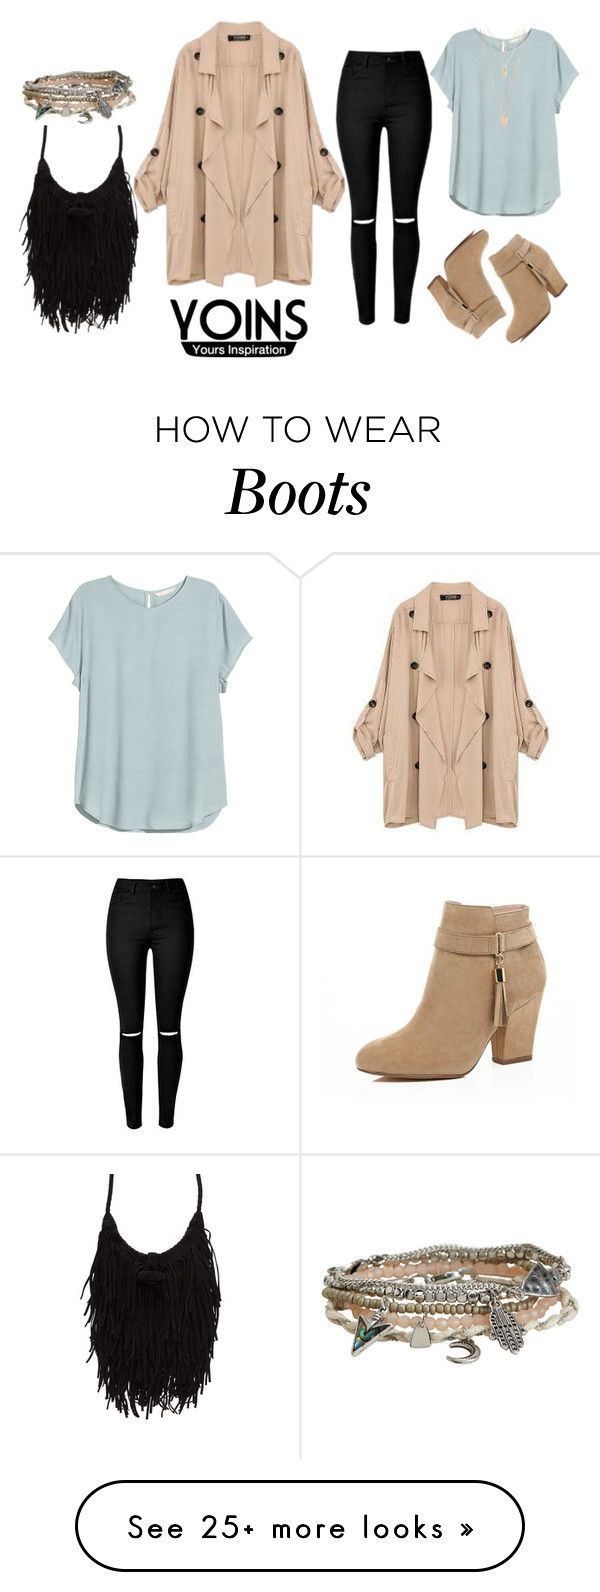 """♡ WIN YOINS KHAKI COAT OR $30 VOUCHER ♡"" by anisimova-i on Polyvore featuring H&M, River Island, Aéropostale, Forever 21, women's clothing, women, female, woman, misses and juniors"